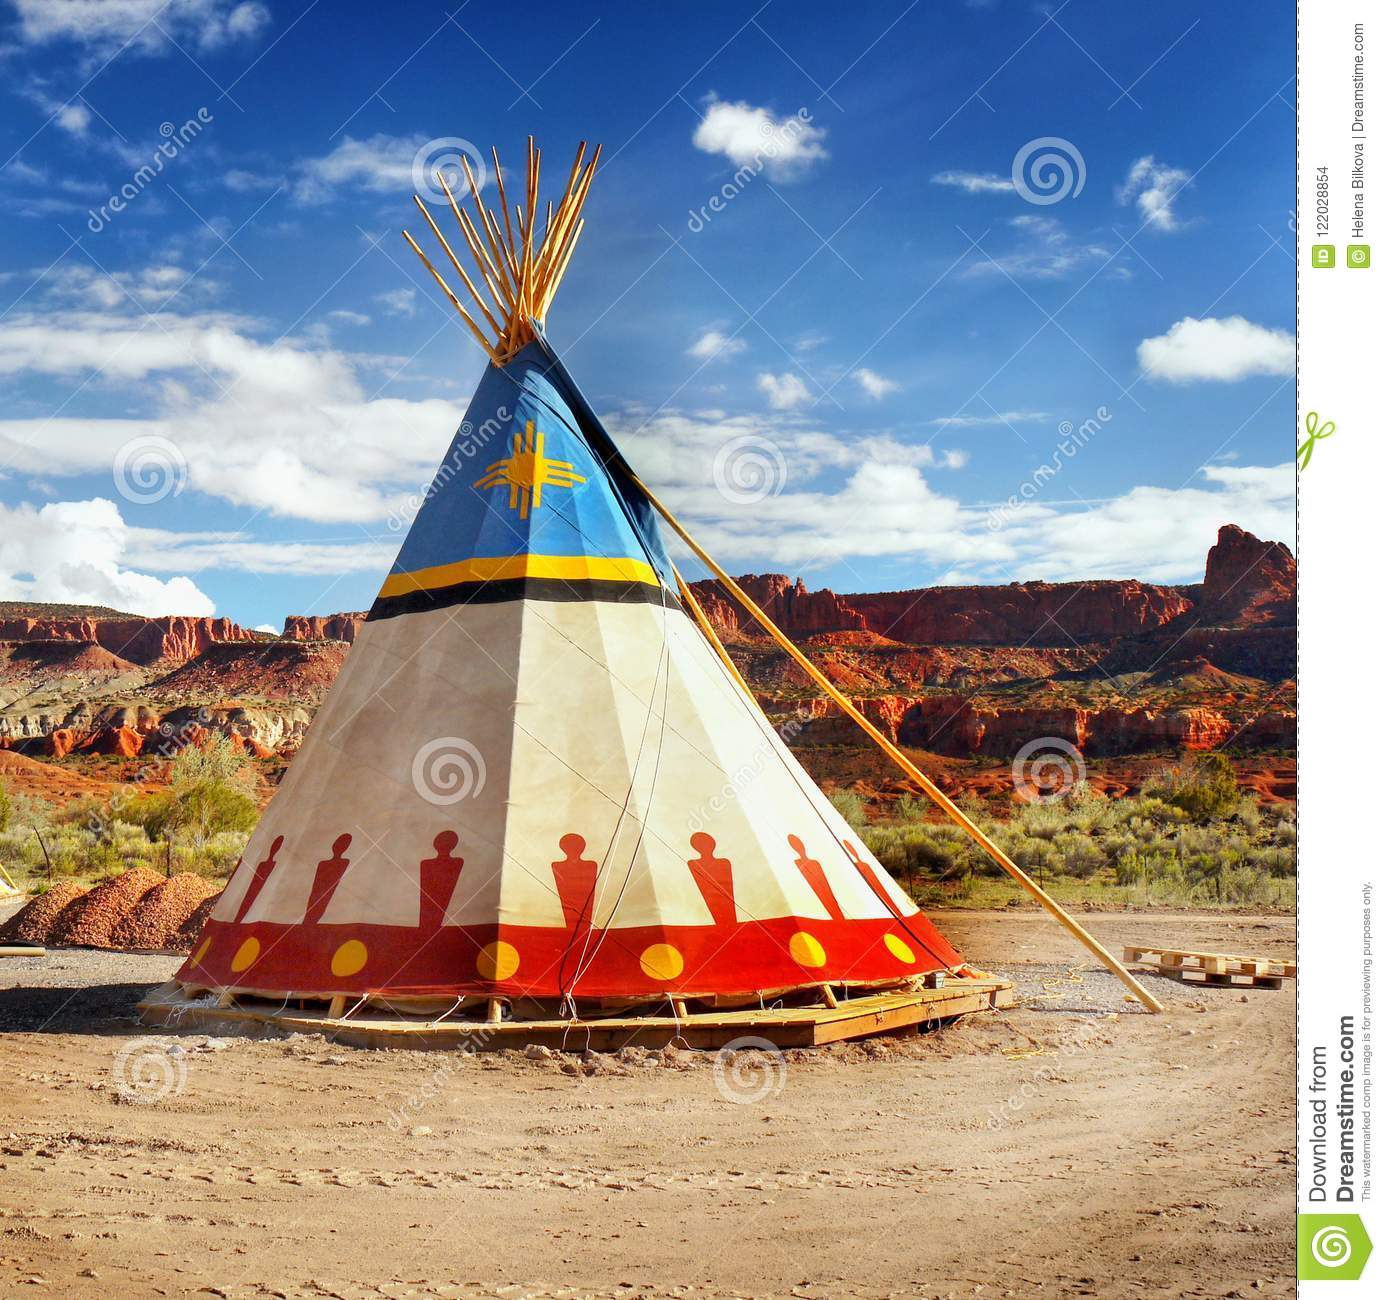 Native American Indian Tent Teepee Stock Photo